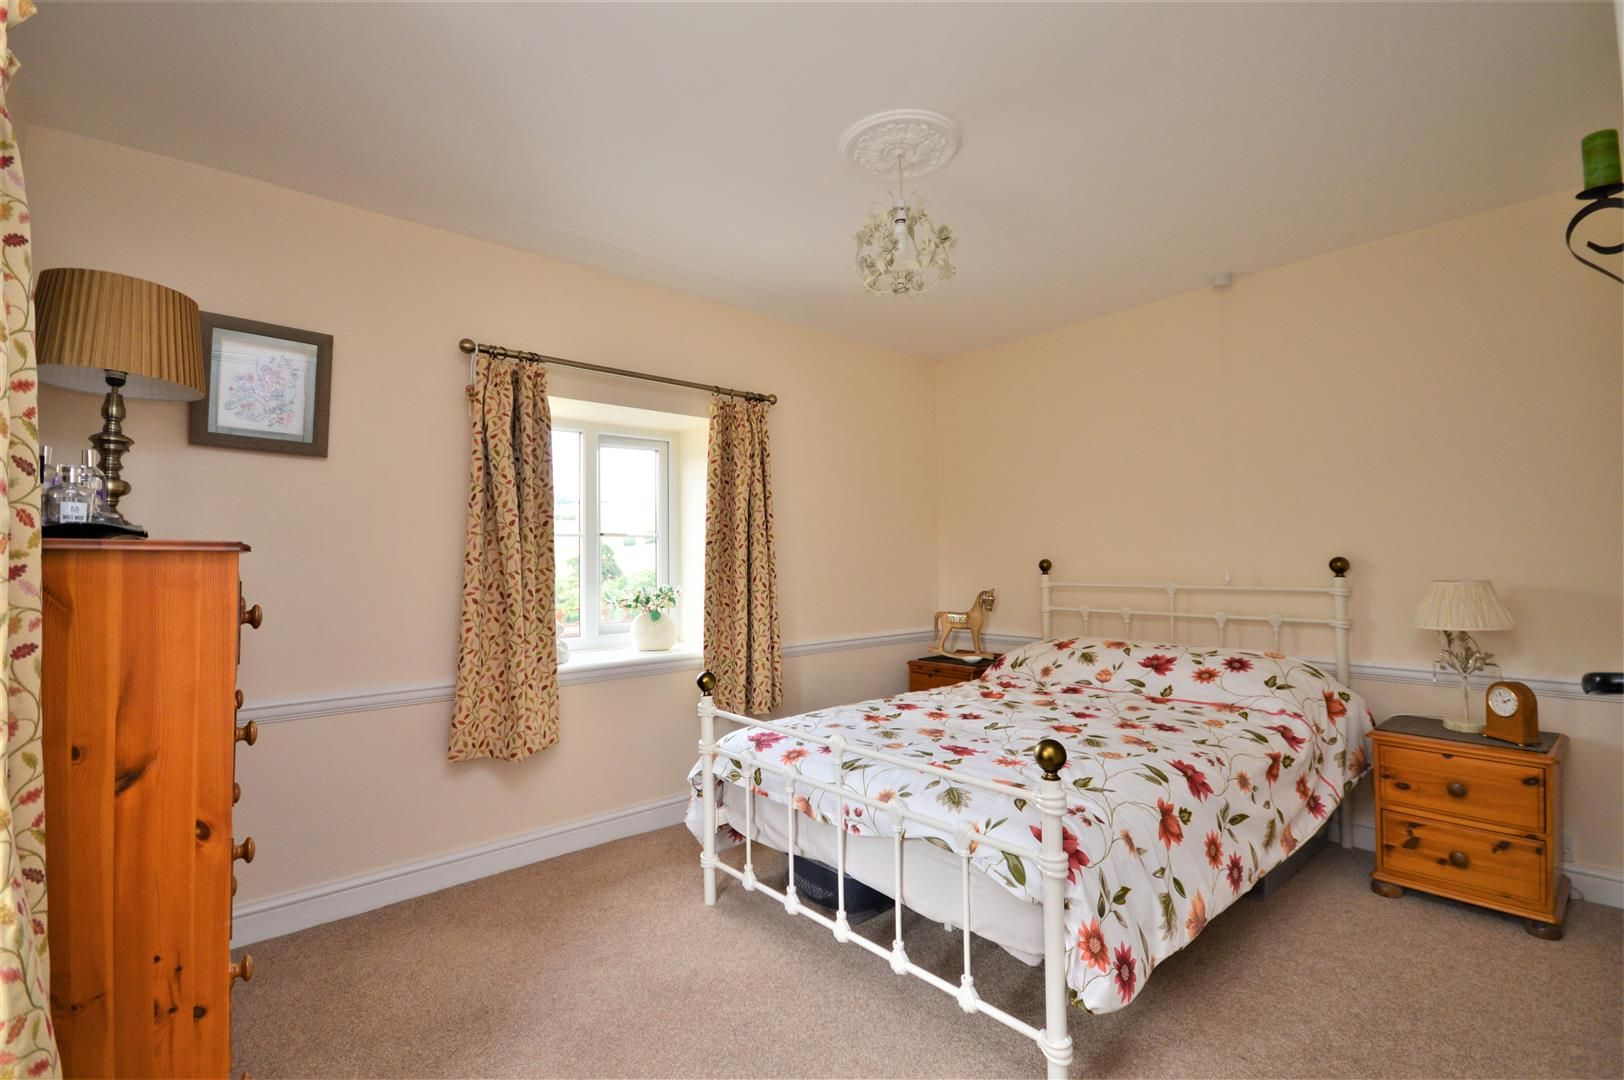 3 bed detached for sale in Orcop 19